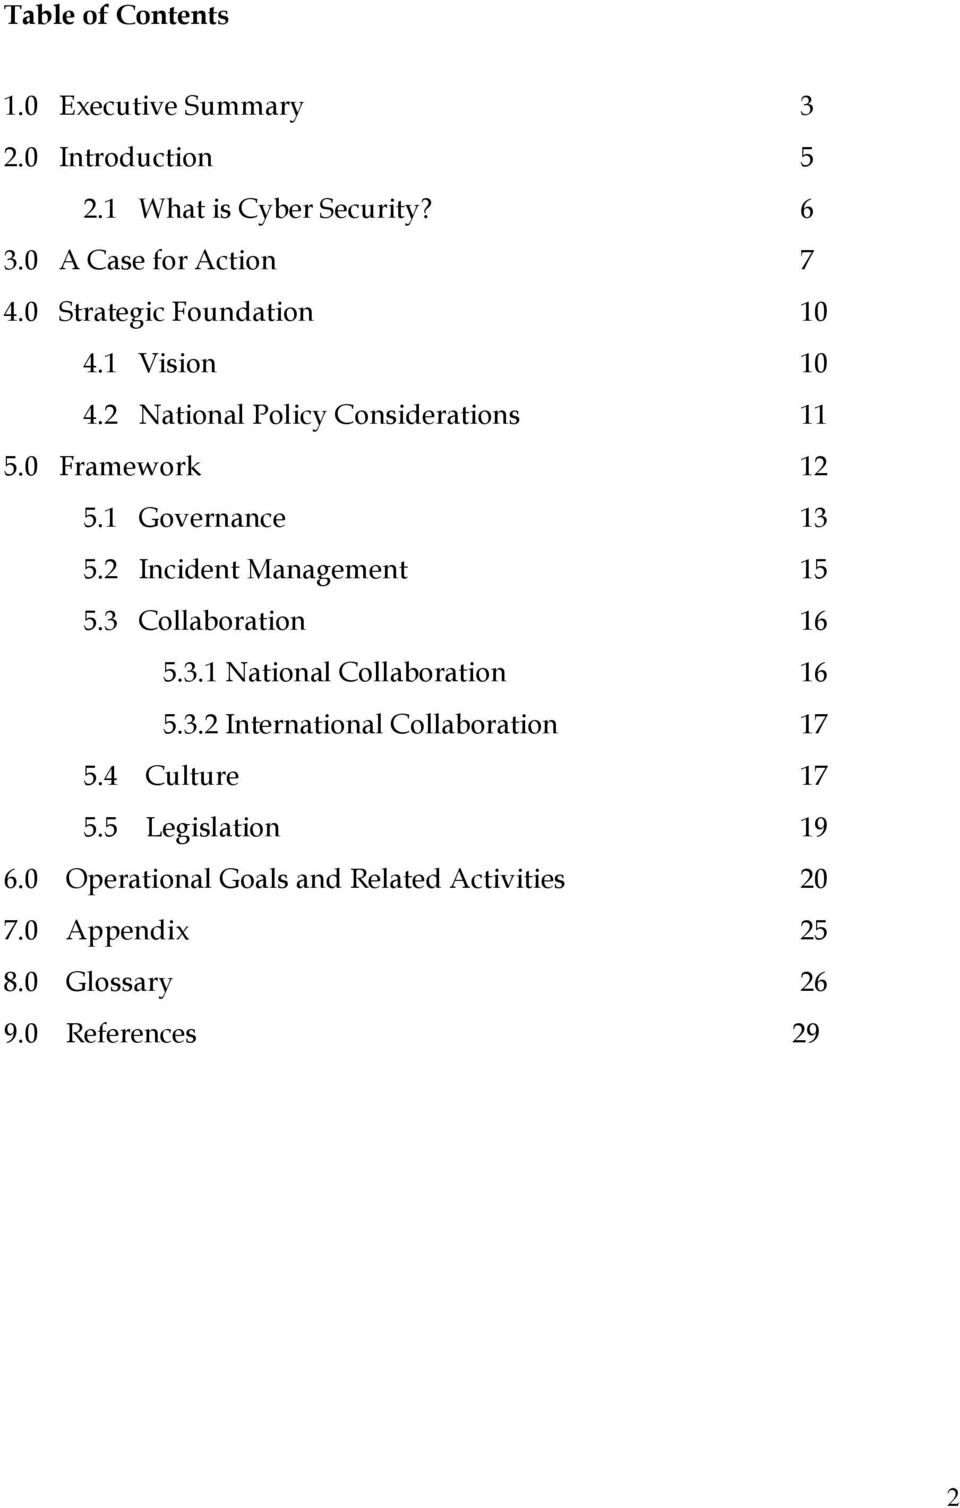 2 Incident Management 15 5.3 Collaboration 16 5.3.1 National Collaboration 16 5.3.2 International Collaboration 17 5.